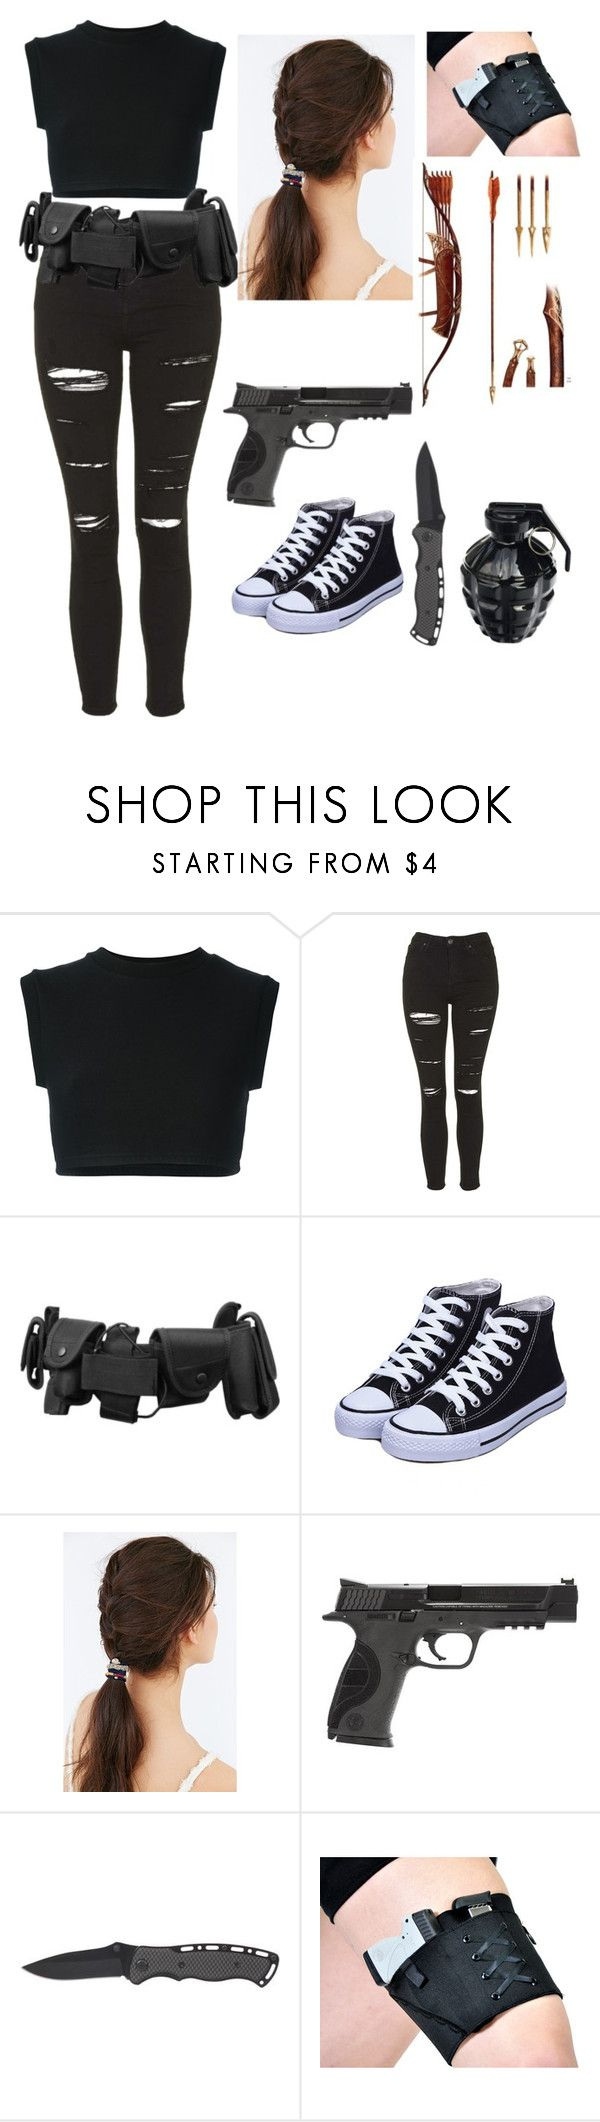 Mr smith matrix quotes quotesgram -  Undercover Agent By Unicornsparklepoop Liked On Polyvore Featuring Adidas Originals Topshop